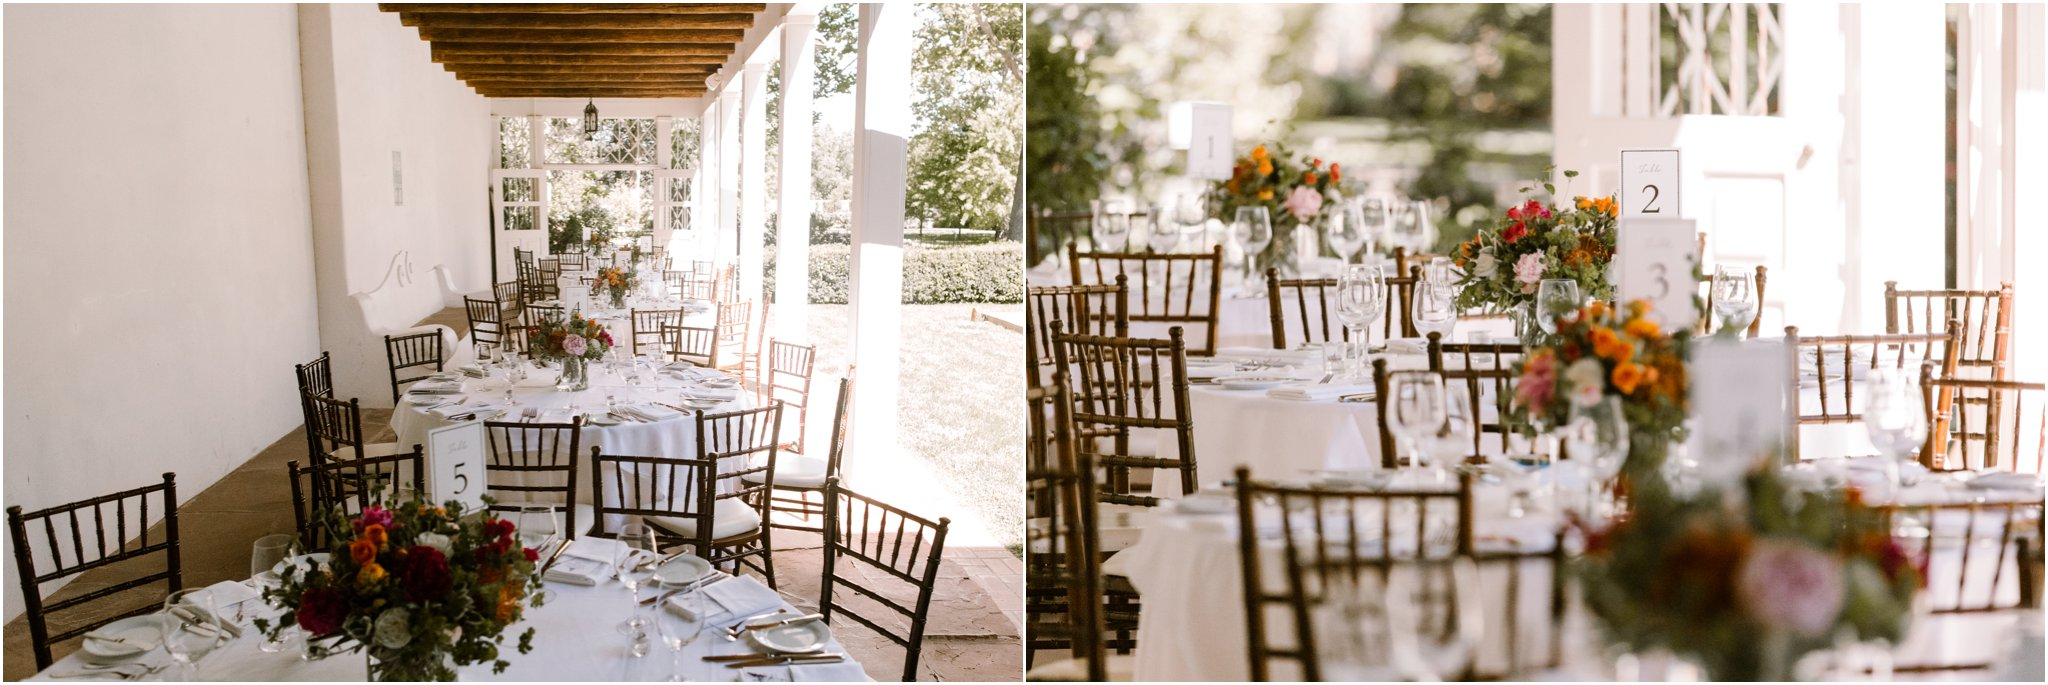 0241Los Poblanos Weddings Blue Rose Photography Studios